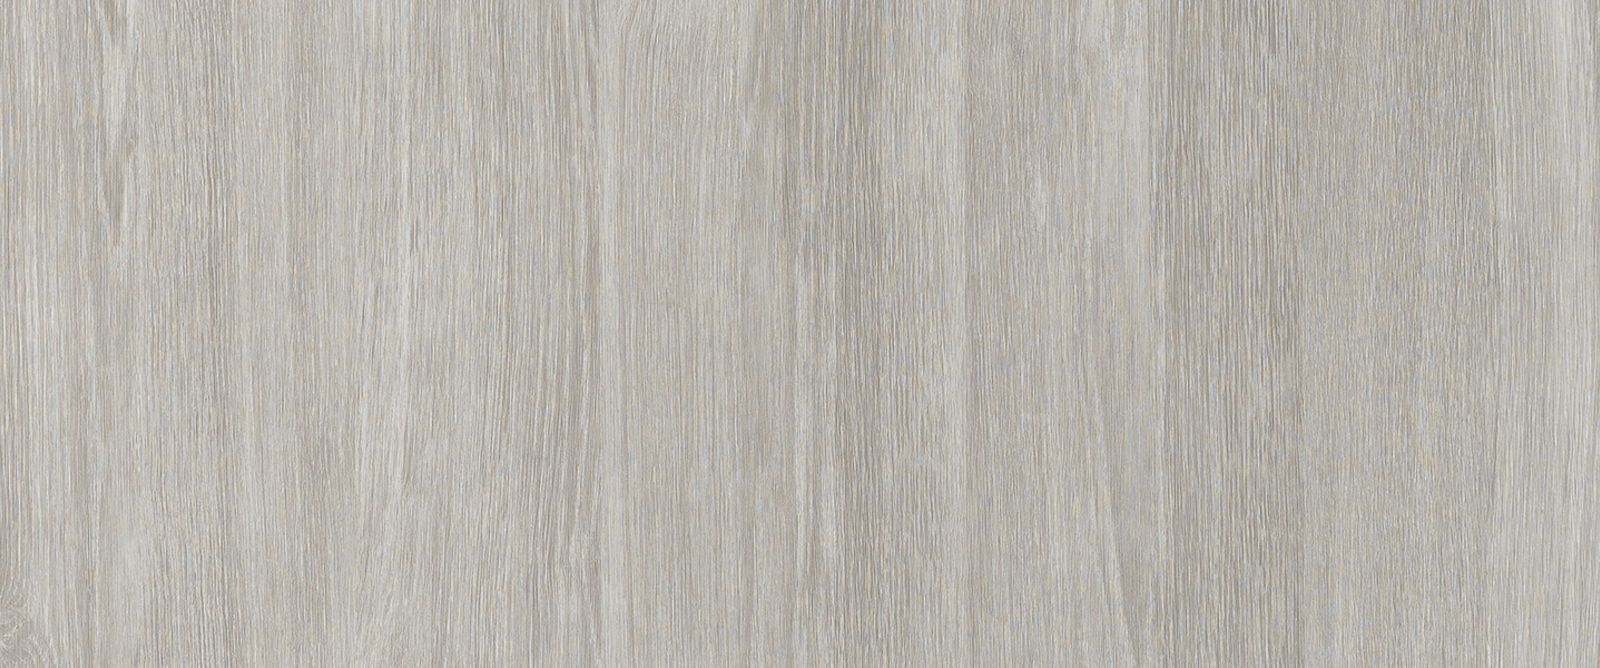 skai® woodec Sheffield Oak alpine